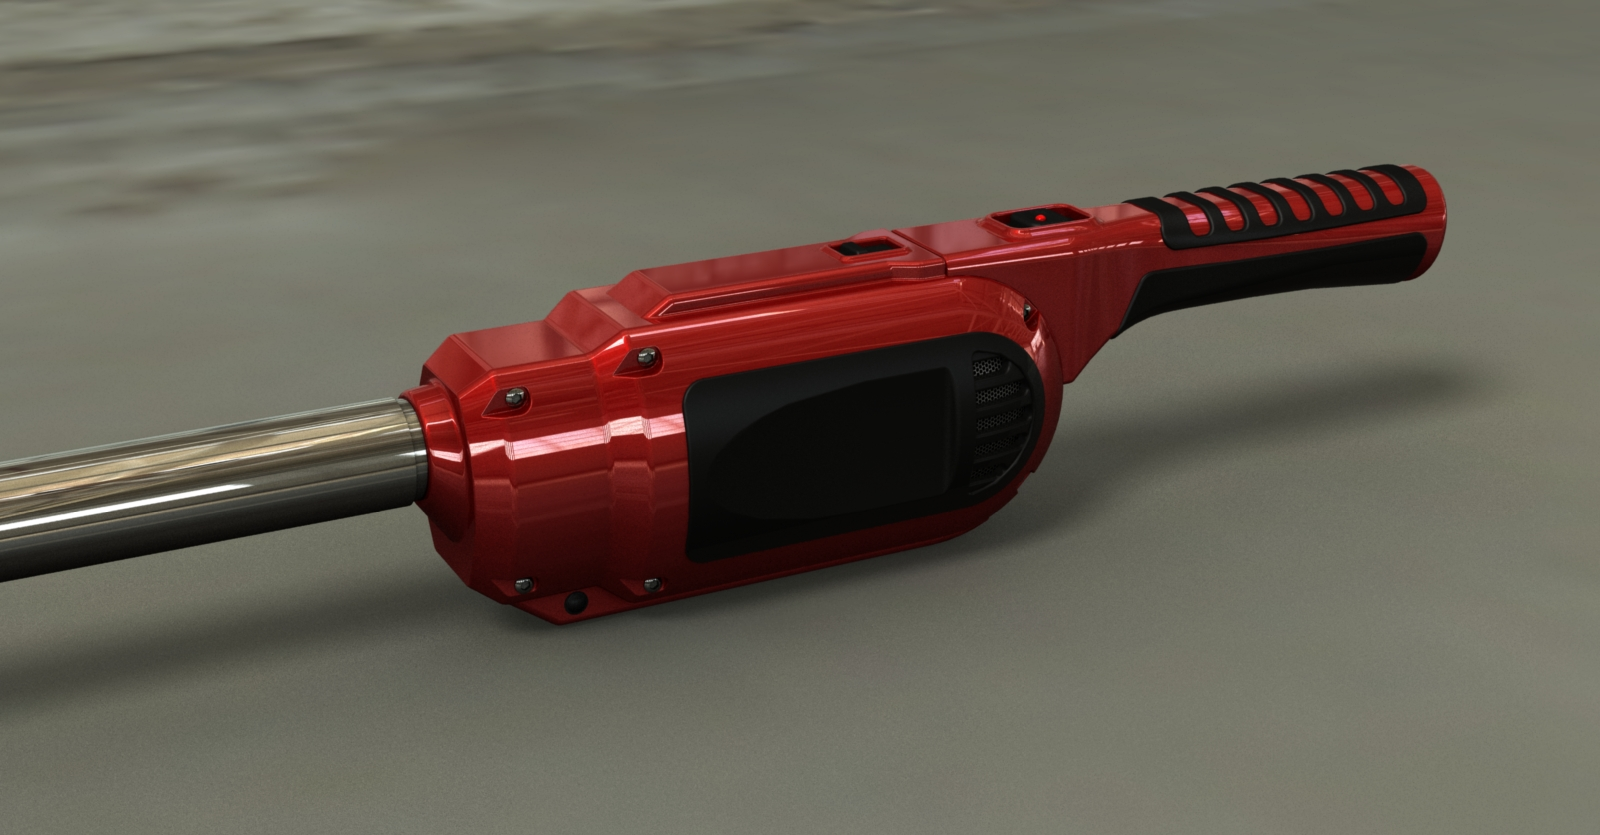 Rendering of Airlighter design - red